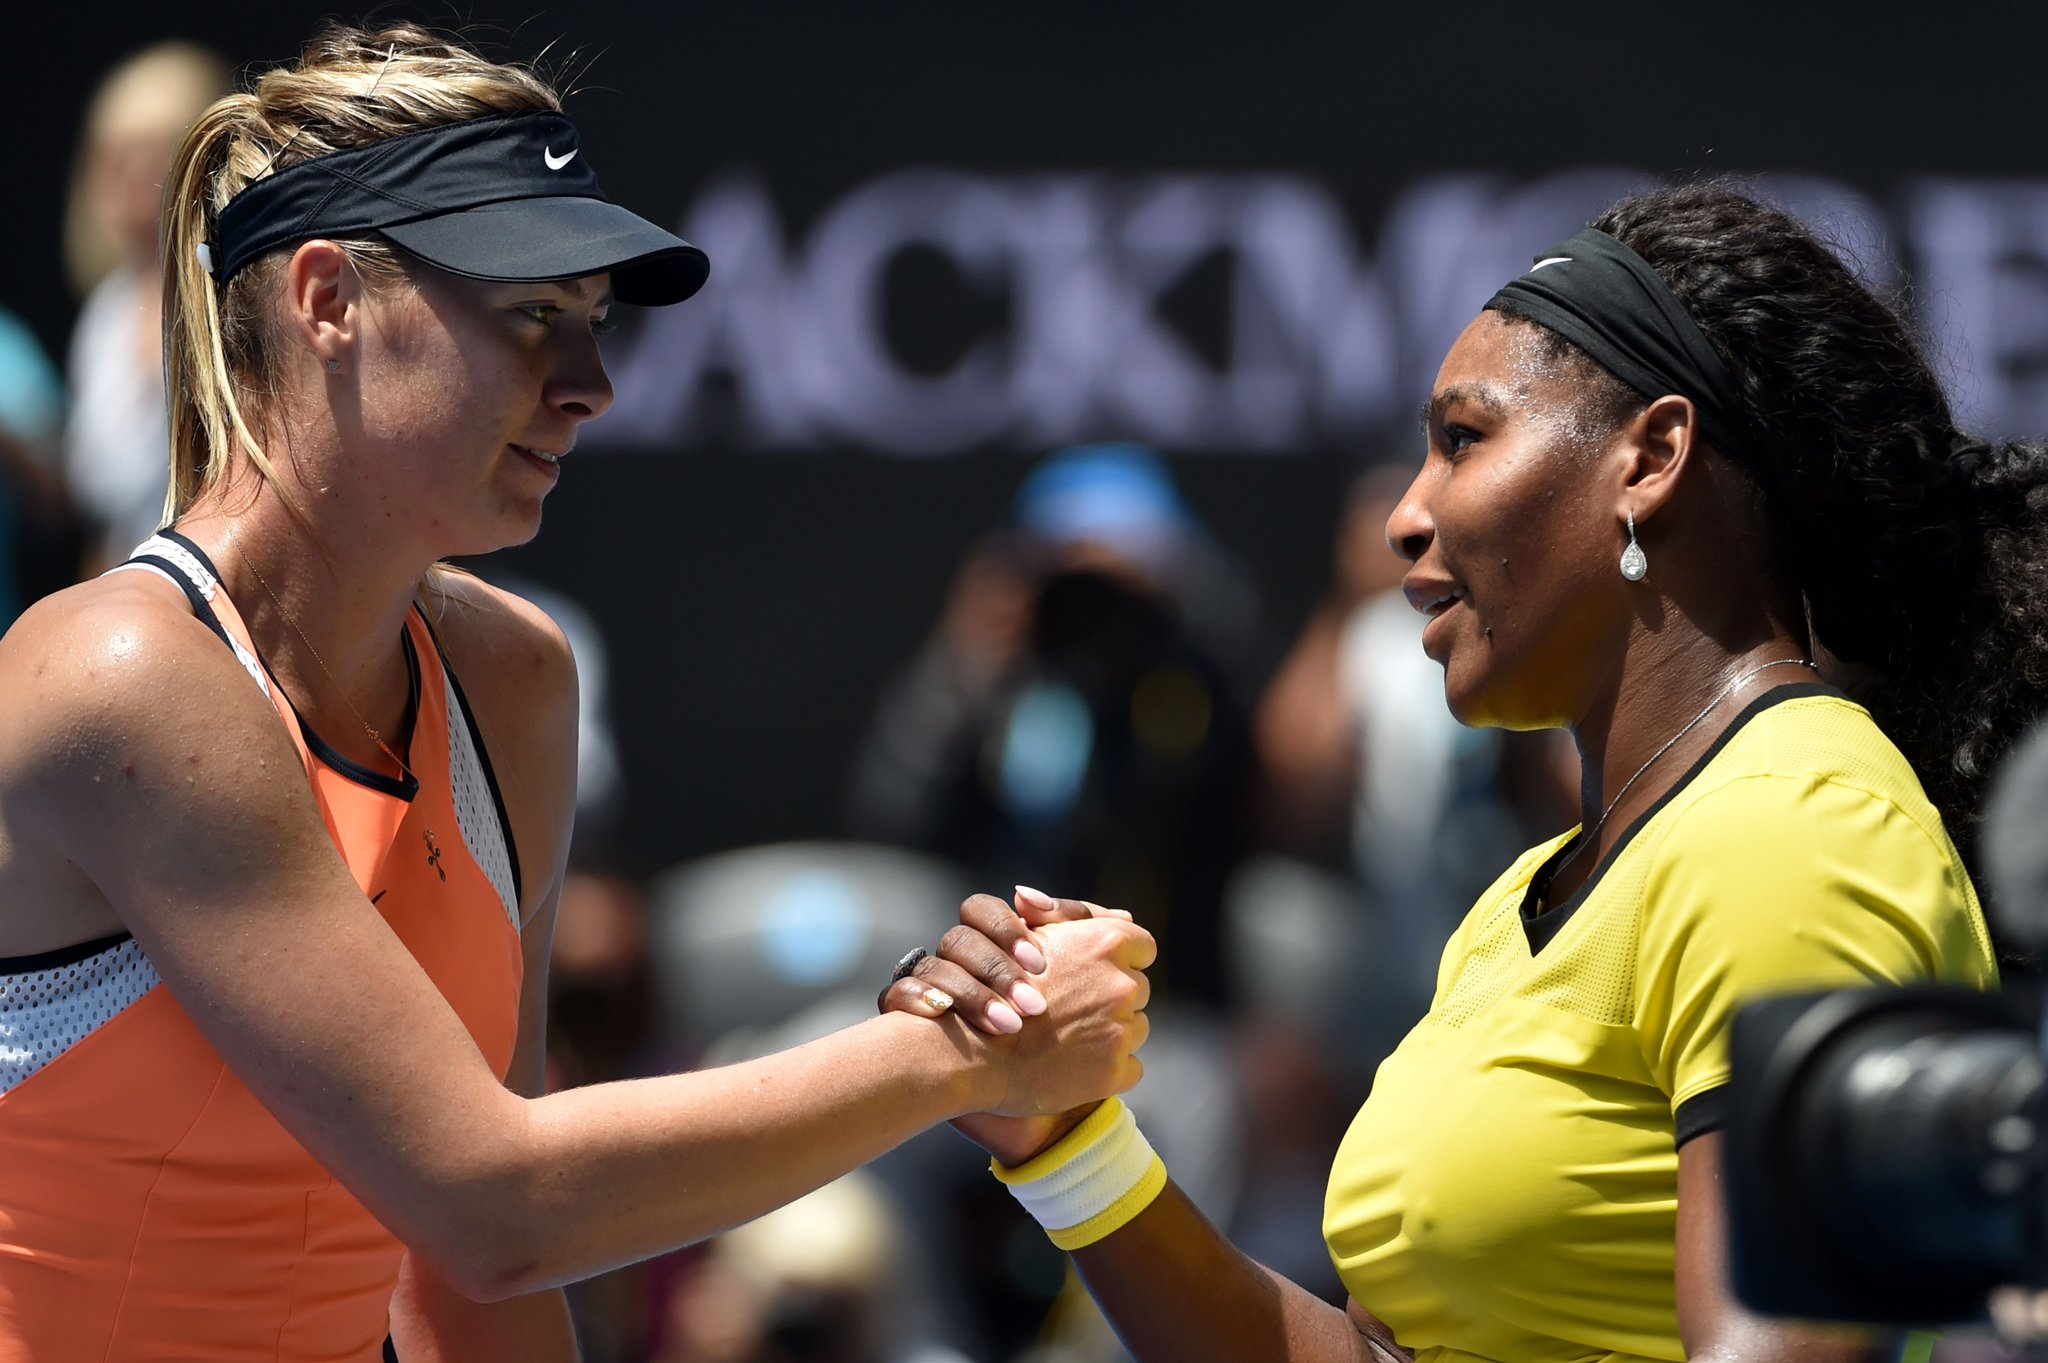 .@serenawilliams and @MariaSharapova are both set to play the @MubadalaSVC--> https://t.co/L9WzqvgaNe https://t.co/pWRYKMni4a